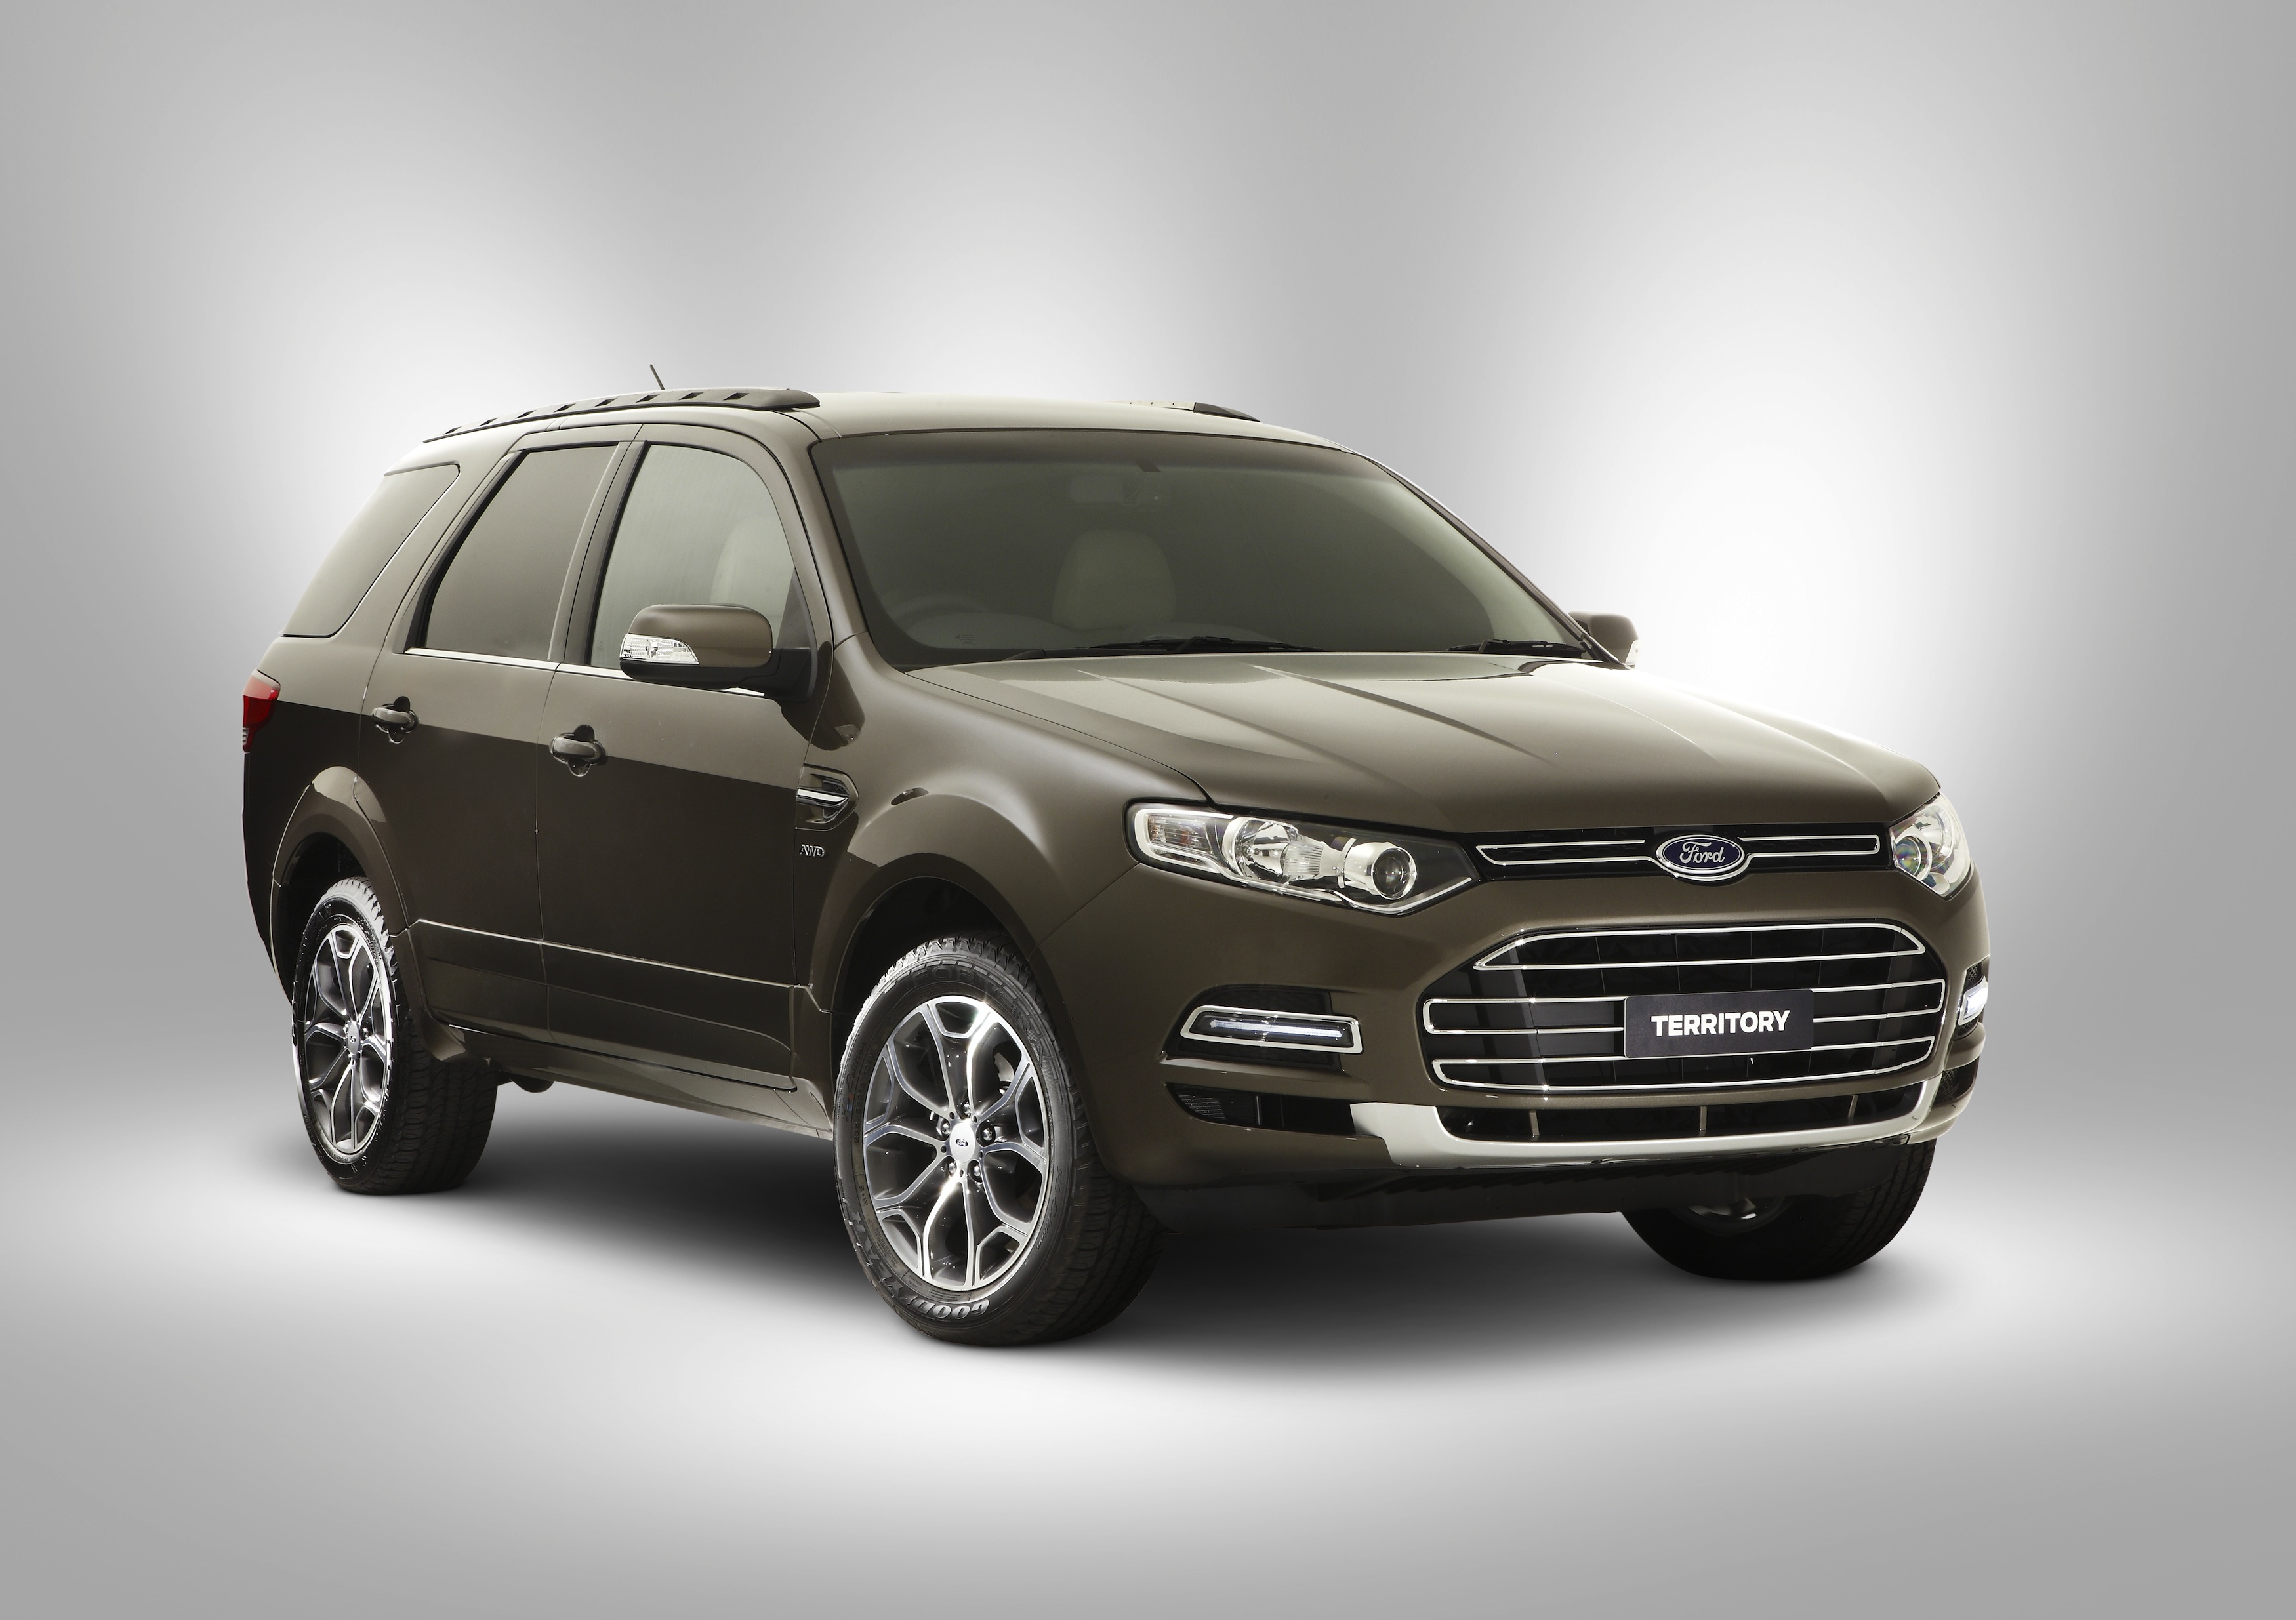 st suv hot race the rod its ford edge ready unveils fortune suvs new